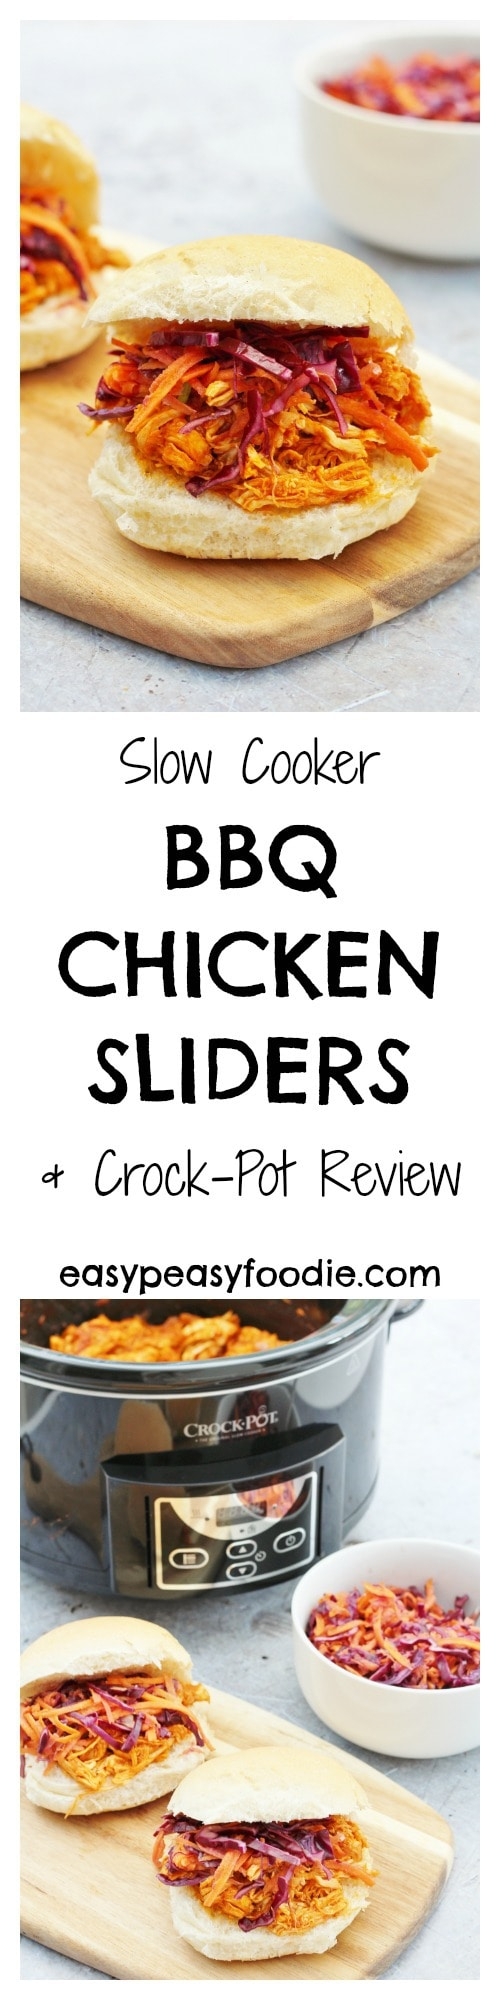 The ultimate, low effort, maximum flavour recipe, these Slow Cooker BBQ Chicken Sliders are ridiculously delicious and oh so easy - with under 5 minutes prep time, let your Crock-Pot take the strain this summer! #SlowCooker #BBQ #Chicken #PulledChicken #Sliders #CrockPot #Review